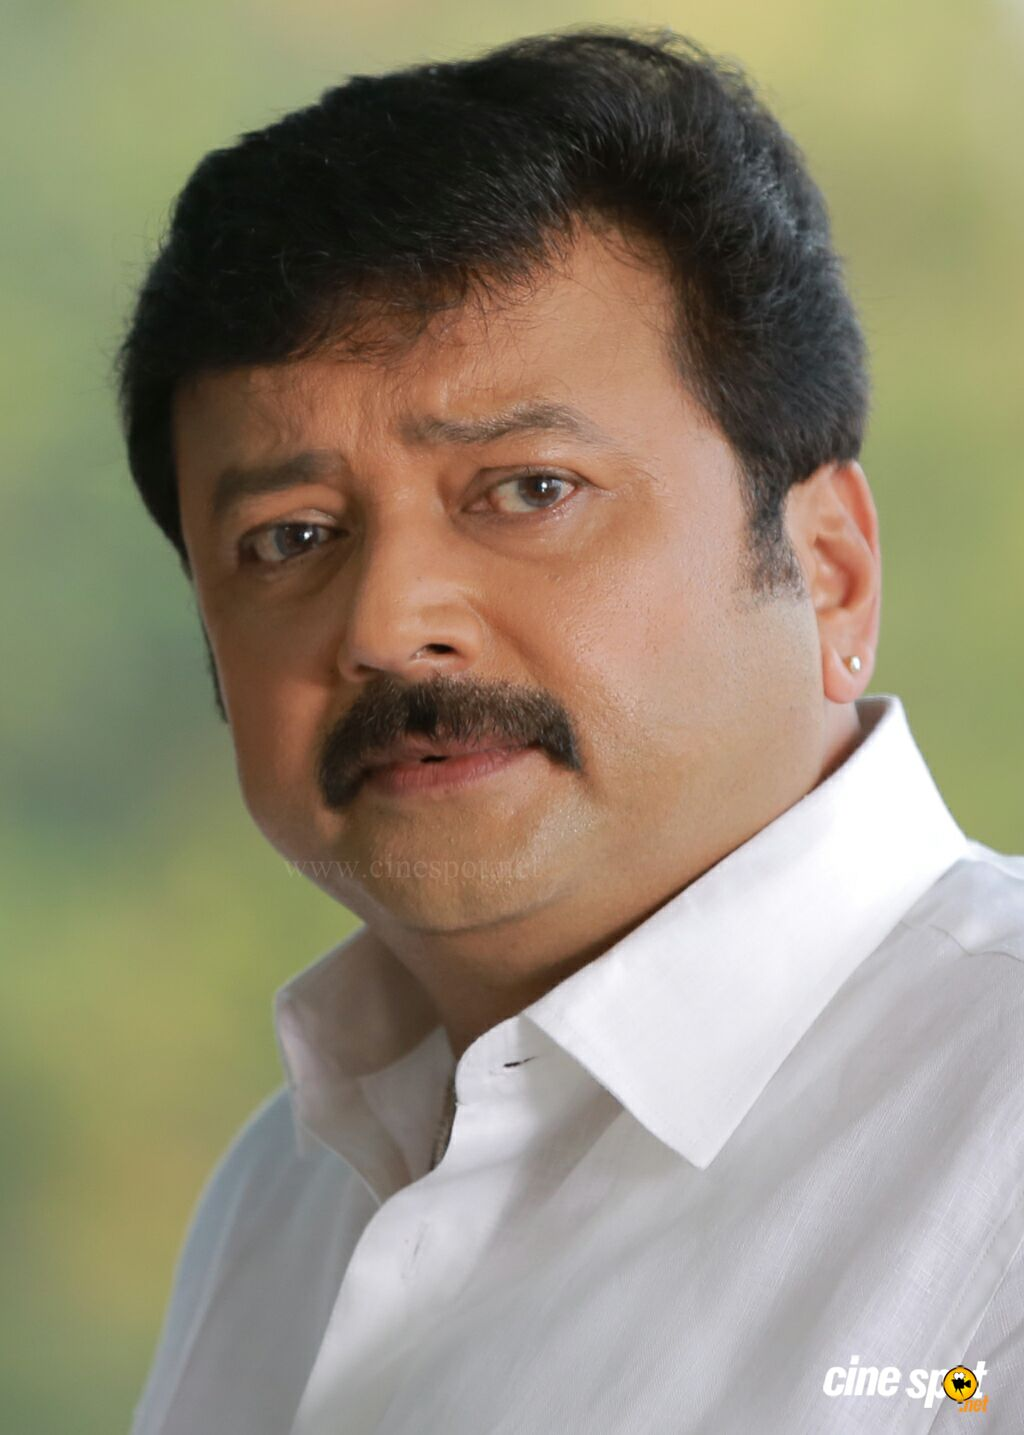 jayaram sethuramanjayaram sethuraman, jayaram n chengalur, jayaram and parvathy, jayaram enterprises, jayaram ajay, jayaram wiki, jayaram krishna moorthy pwc, jayaram son, jayaram family, jayaram movie list, jayaram facebook, jayaram hits, jayaram upcoming movies, jayaram padikkal, jayaram new movie, jayaram hotel pondicherry, jayaram ramesh, jayaram in cinema chirima, jayaram kartik, jayaram kalidas mimicry